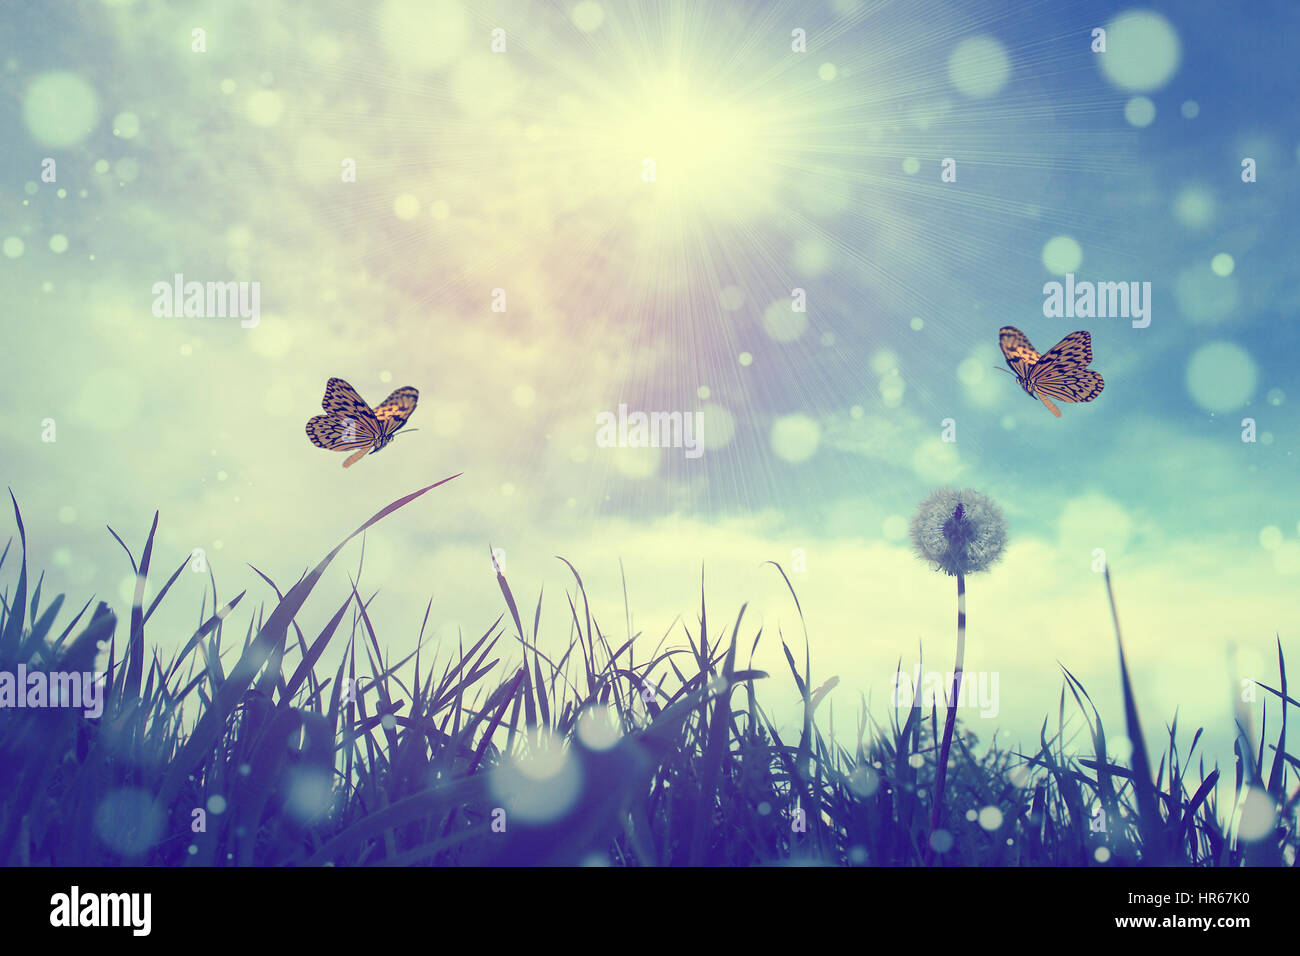 Butterfly and flower - Stock Image